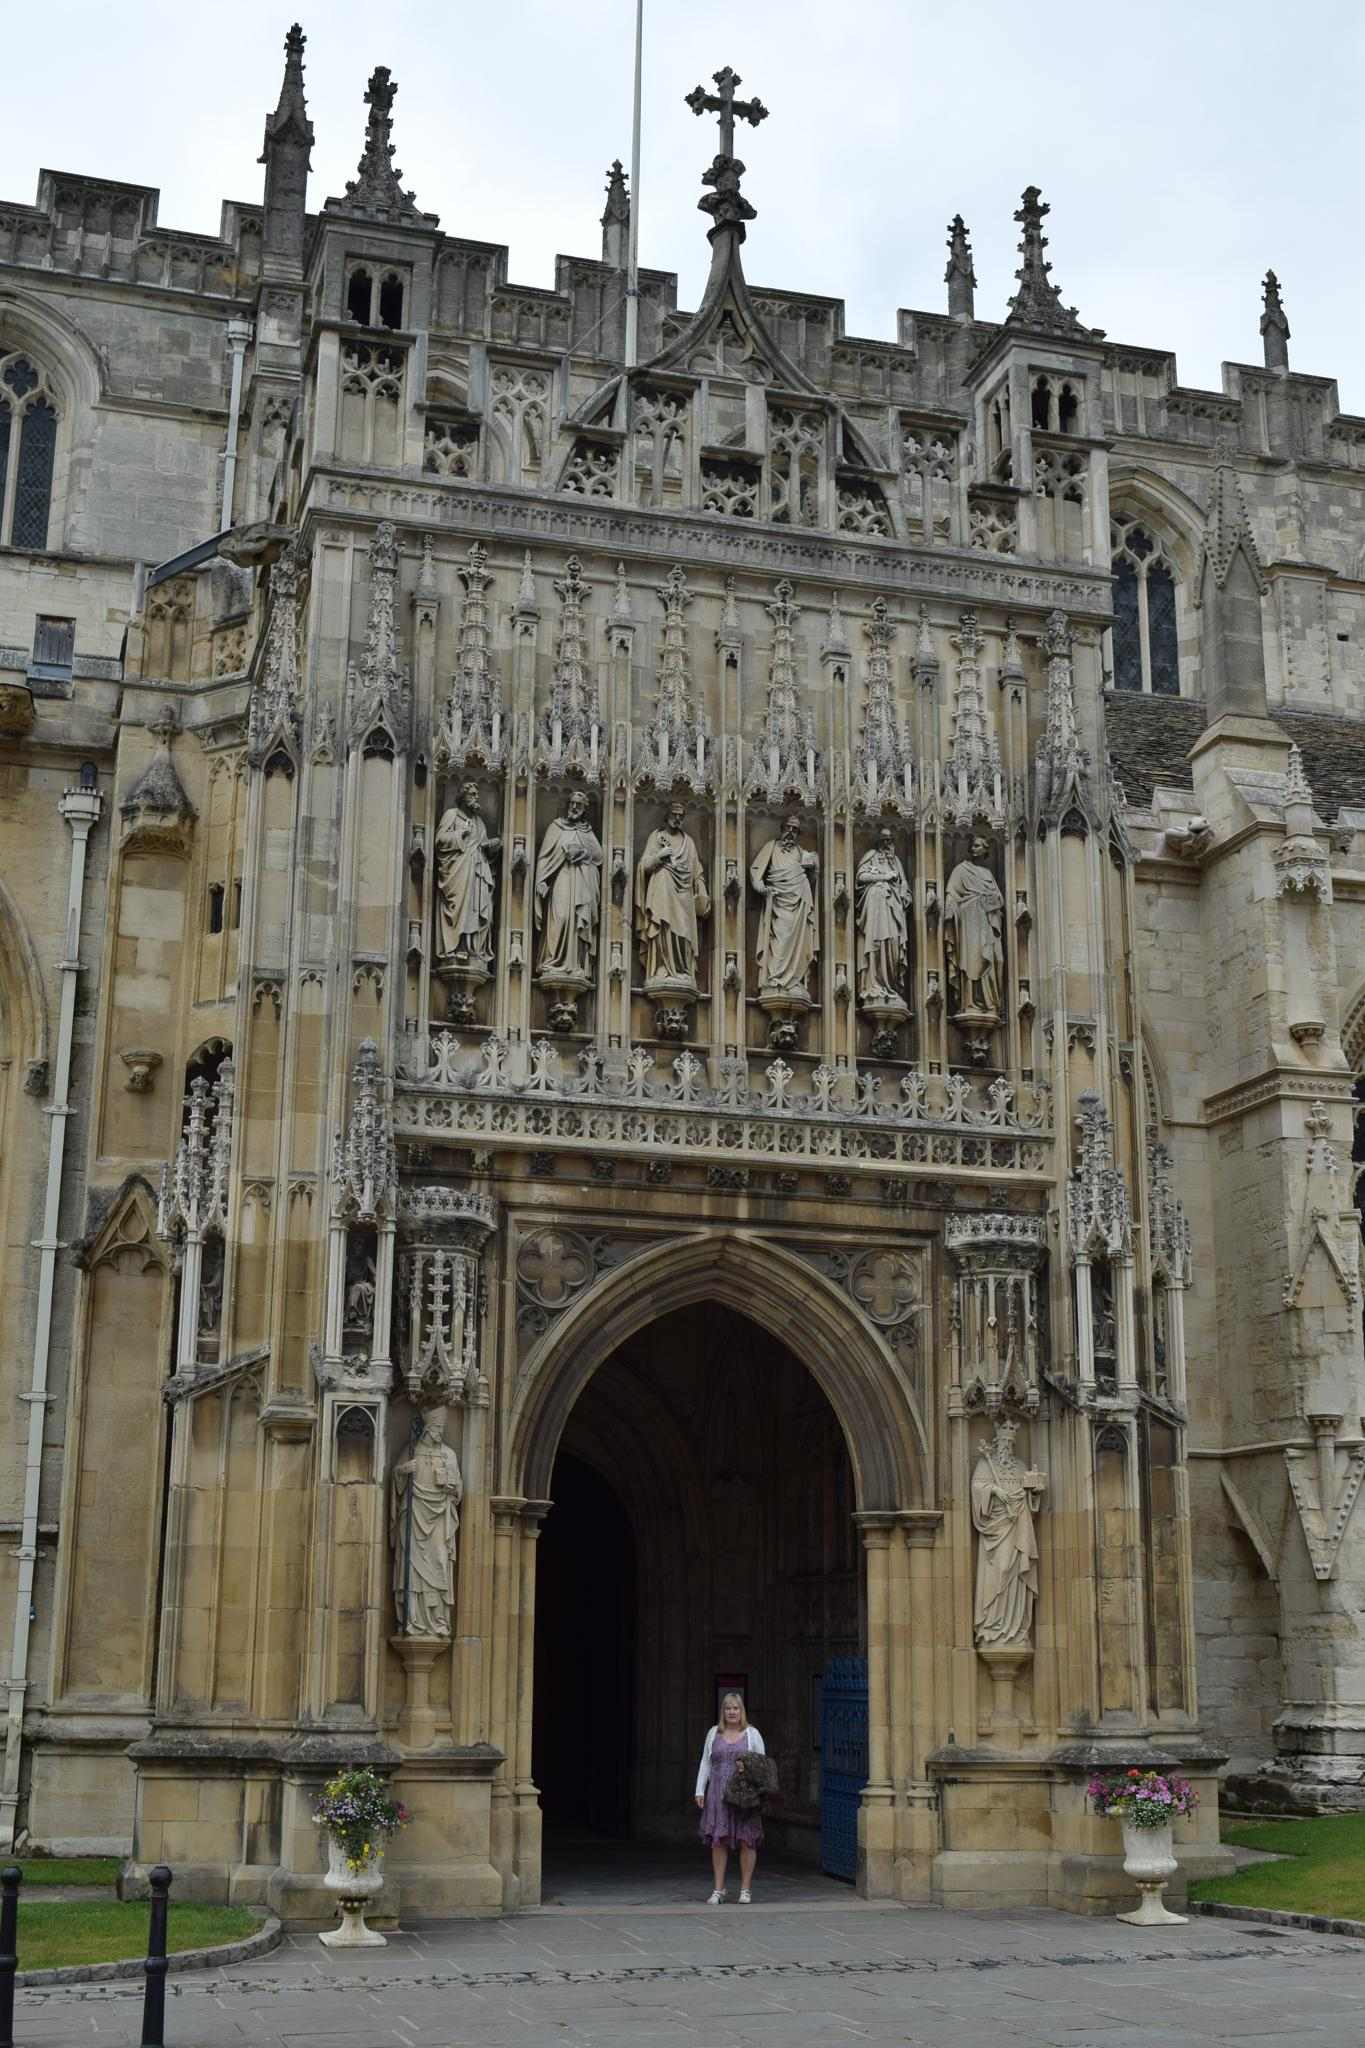 Gloucester Cathedral, main entrance by Gwynboyo